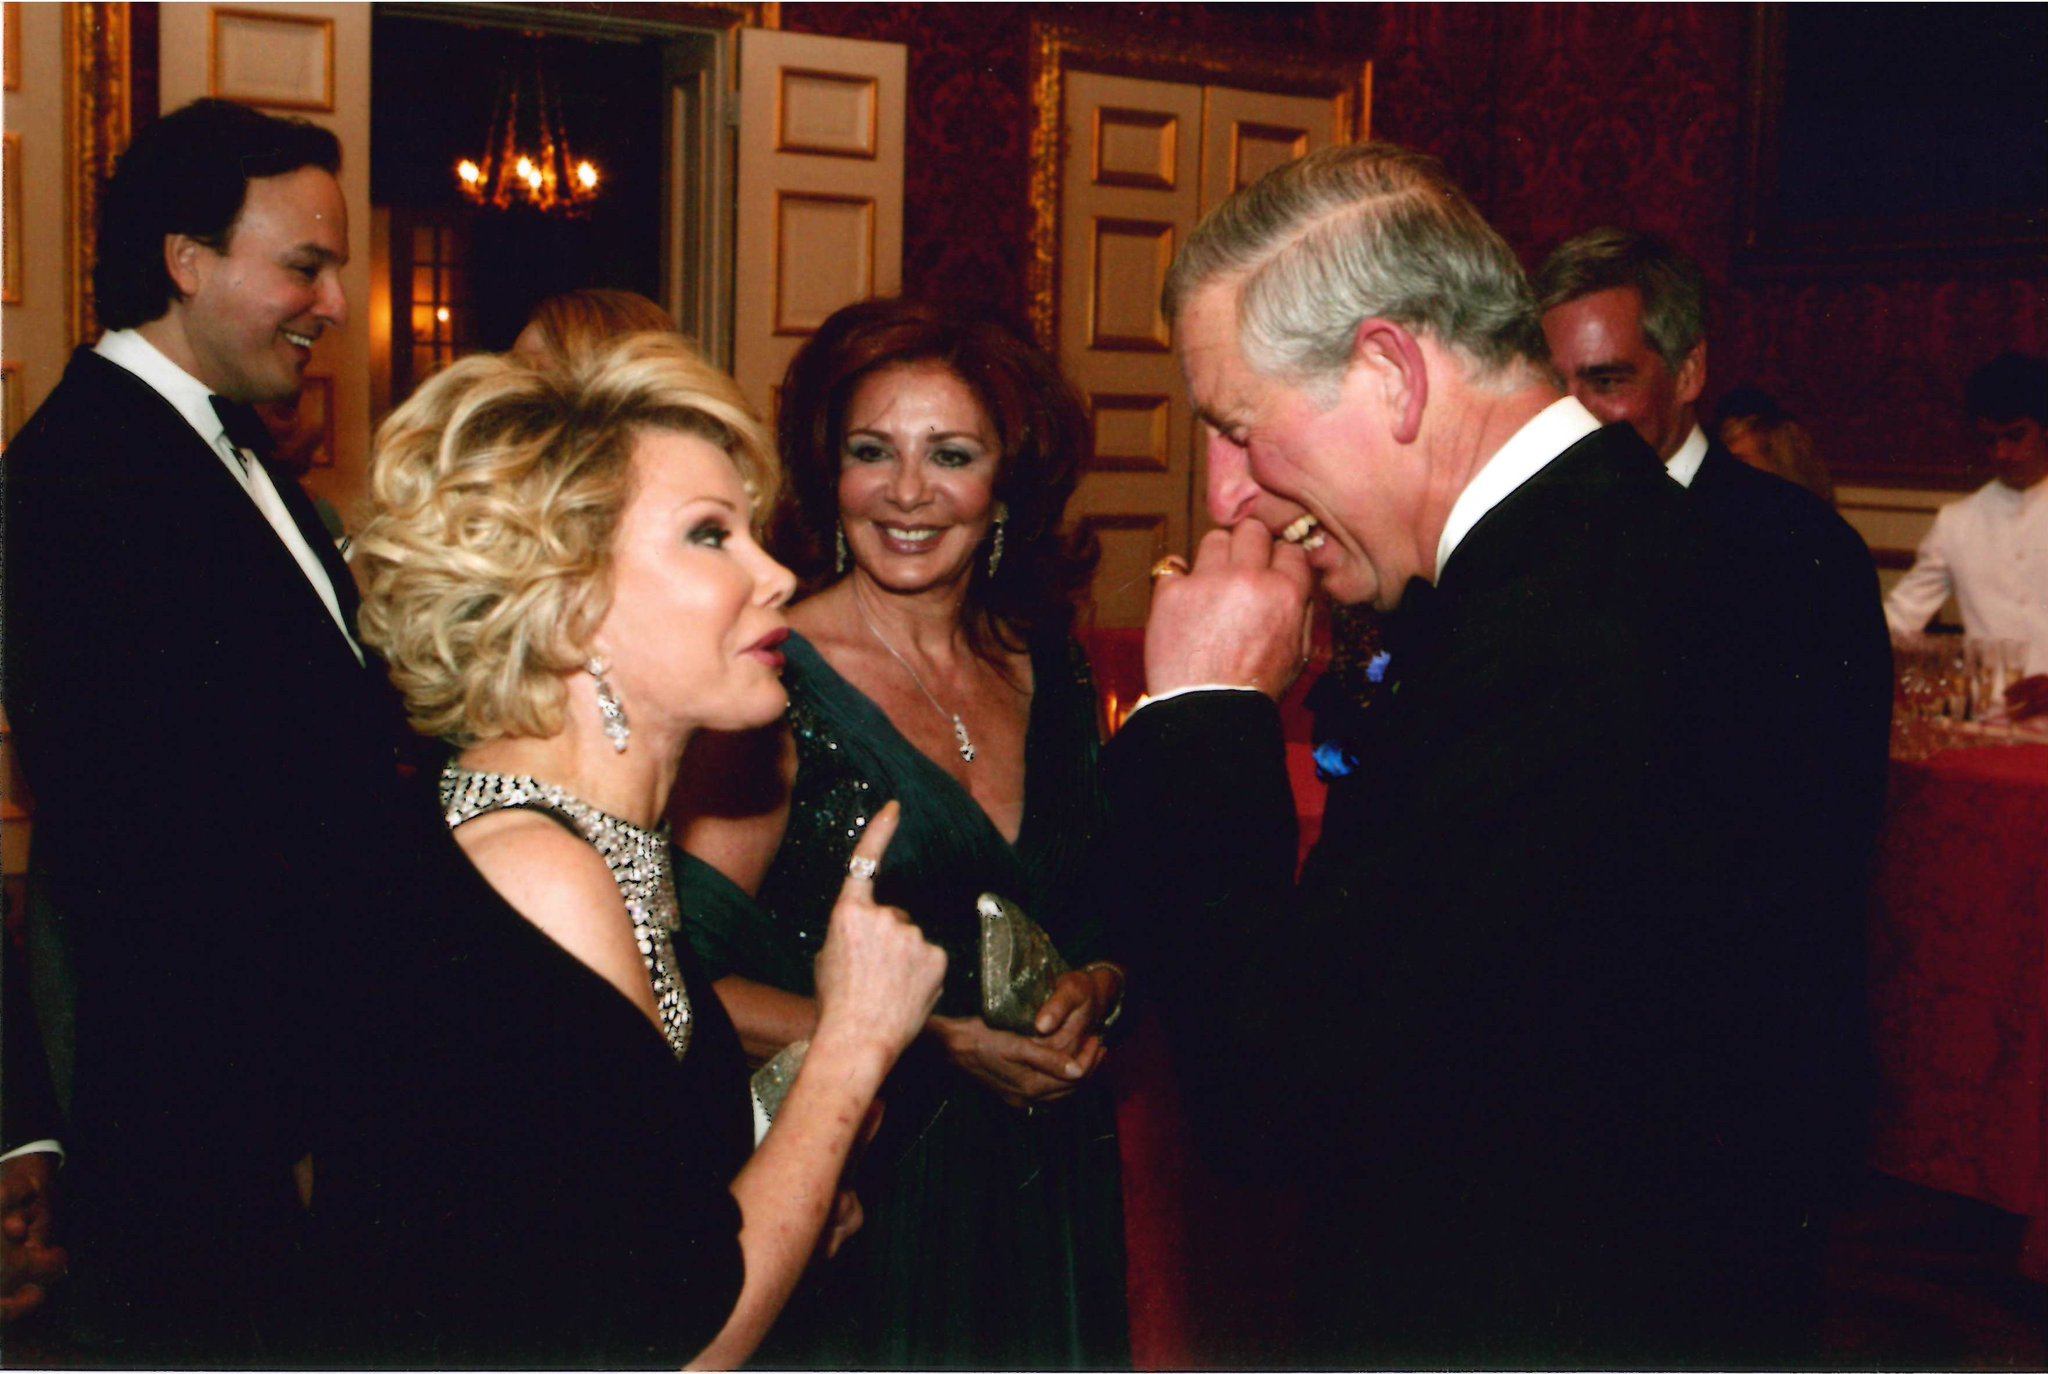 She could always make him laugh! Happy Birthday to Joan s good friend, HRH Prince Charles!